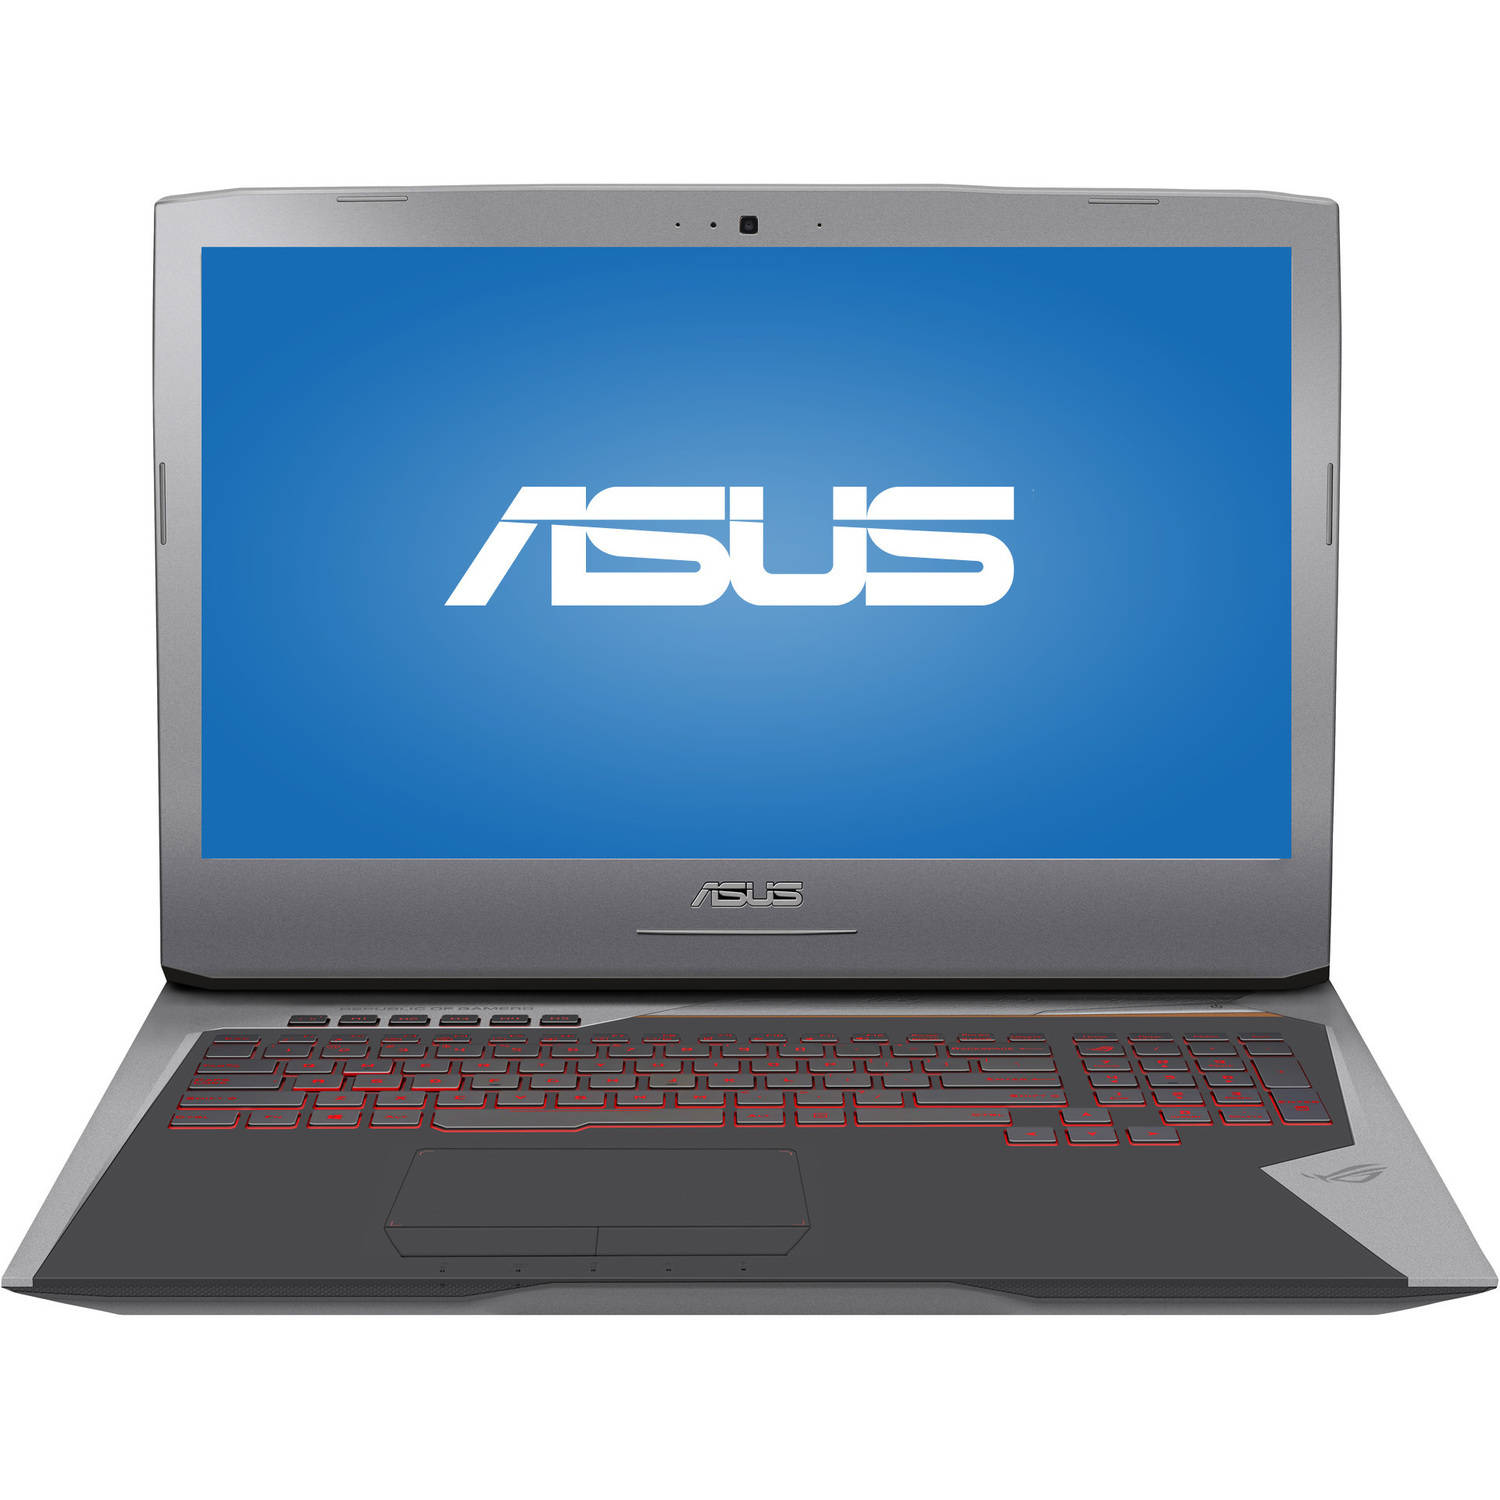 "ASUS Copper Silver 17.3"" G752VT-RH71 Laptop PC with Intel Core i7-6700HQ Processor, 16GB Memory, 1TB Hard Drive and Windows 10"